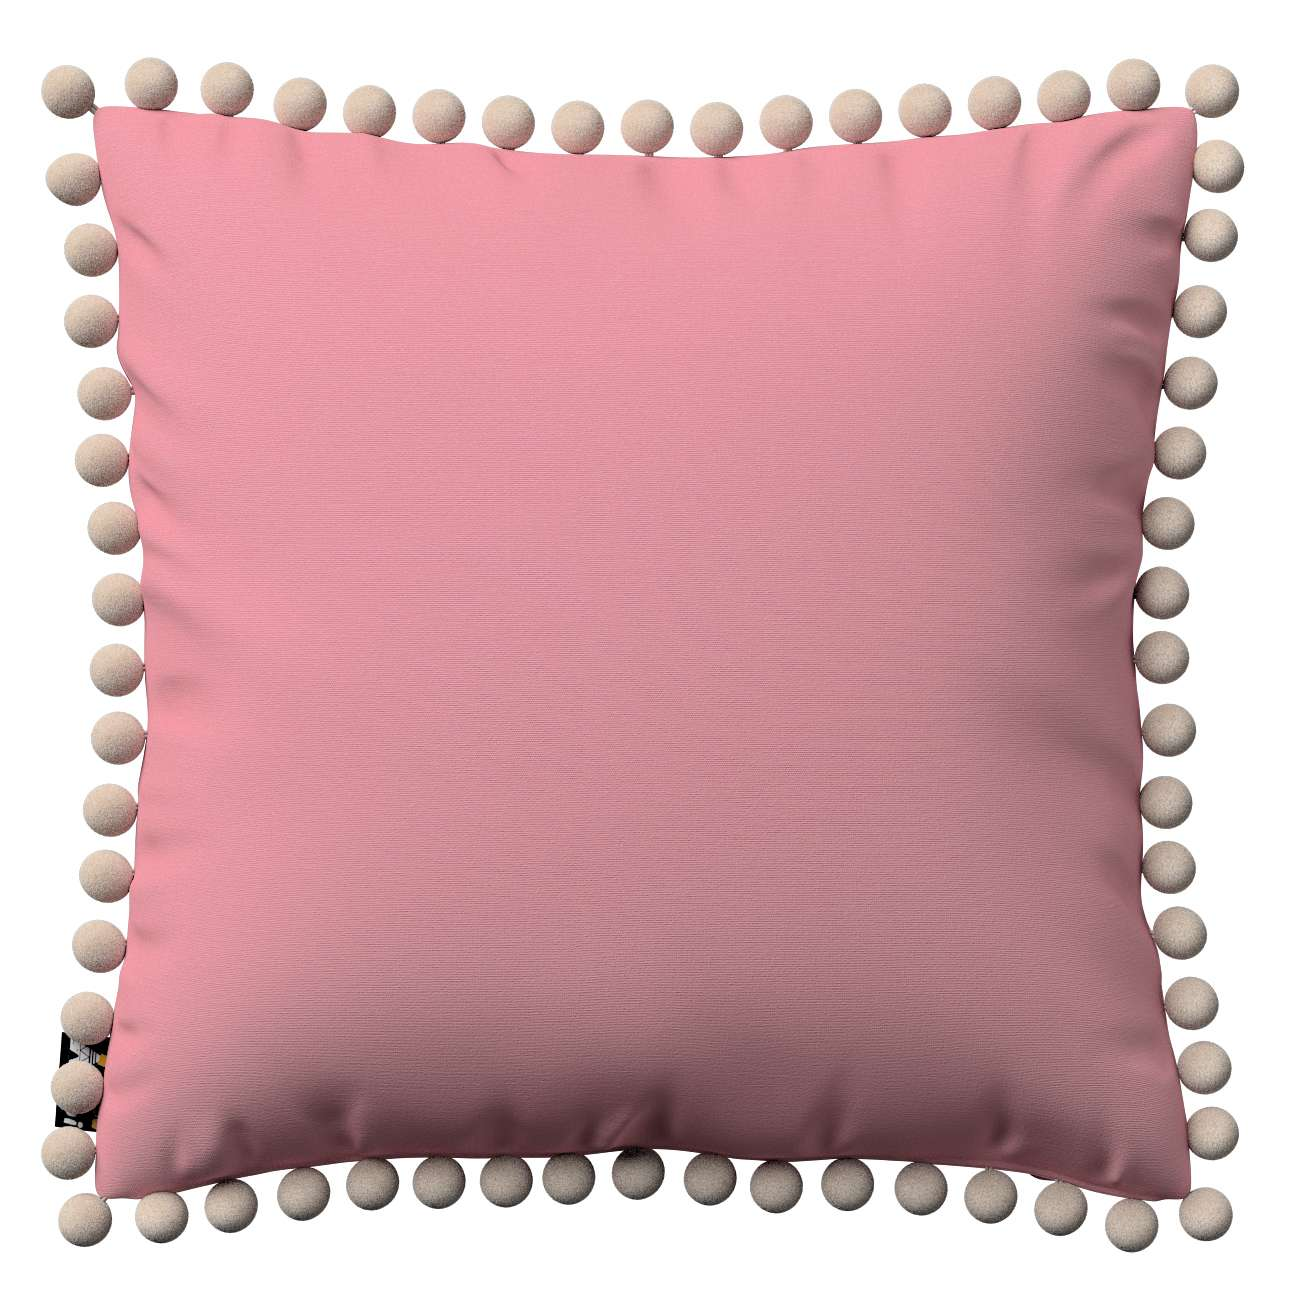 Daisy cushion covers with pom poms in collection Happiness, fabric: 133-62